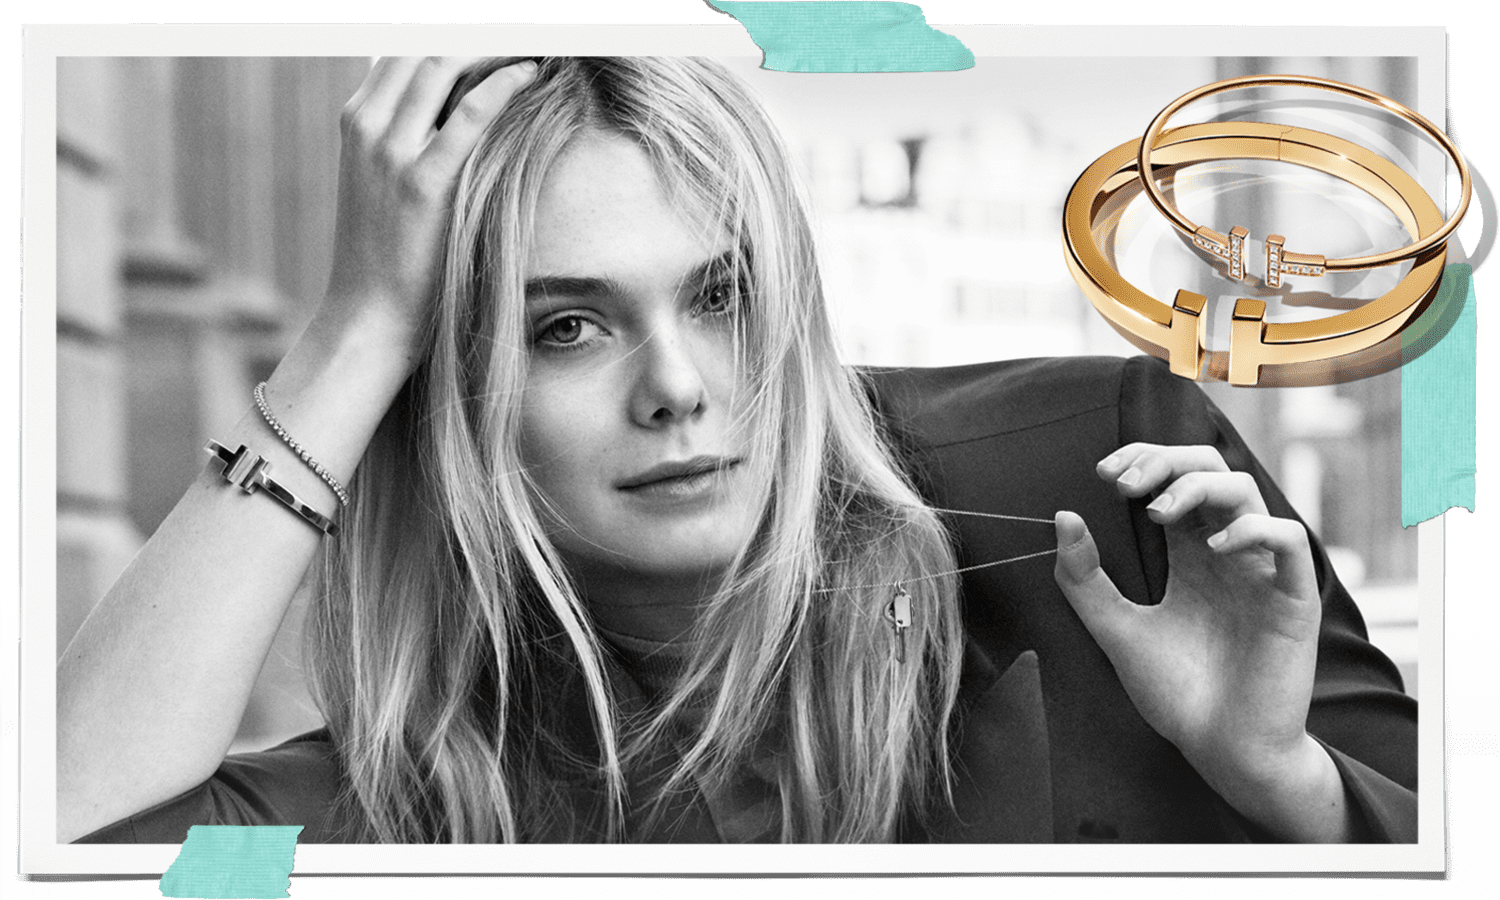 Tiffany & Co. Global Site Redesign